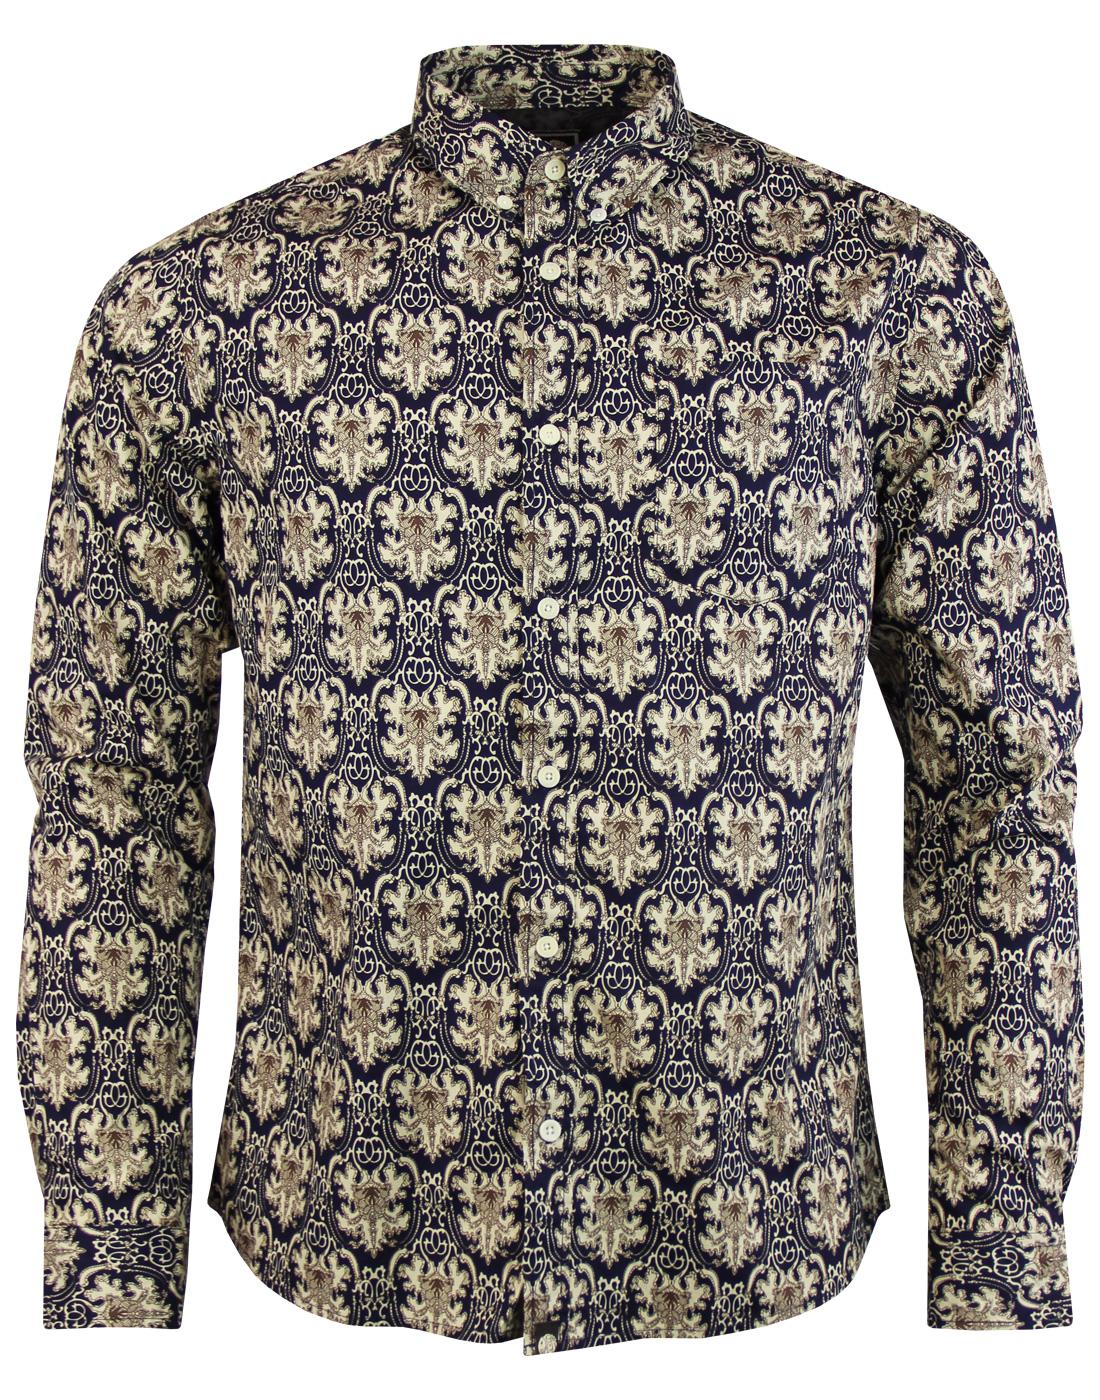 Wardour PRETTY GREEN Mod Abstract Print Shirt (N)